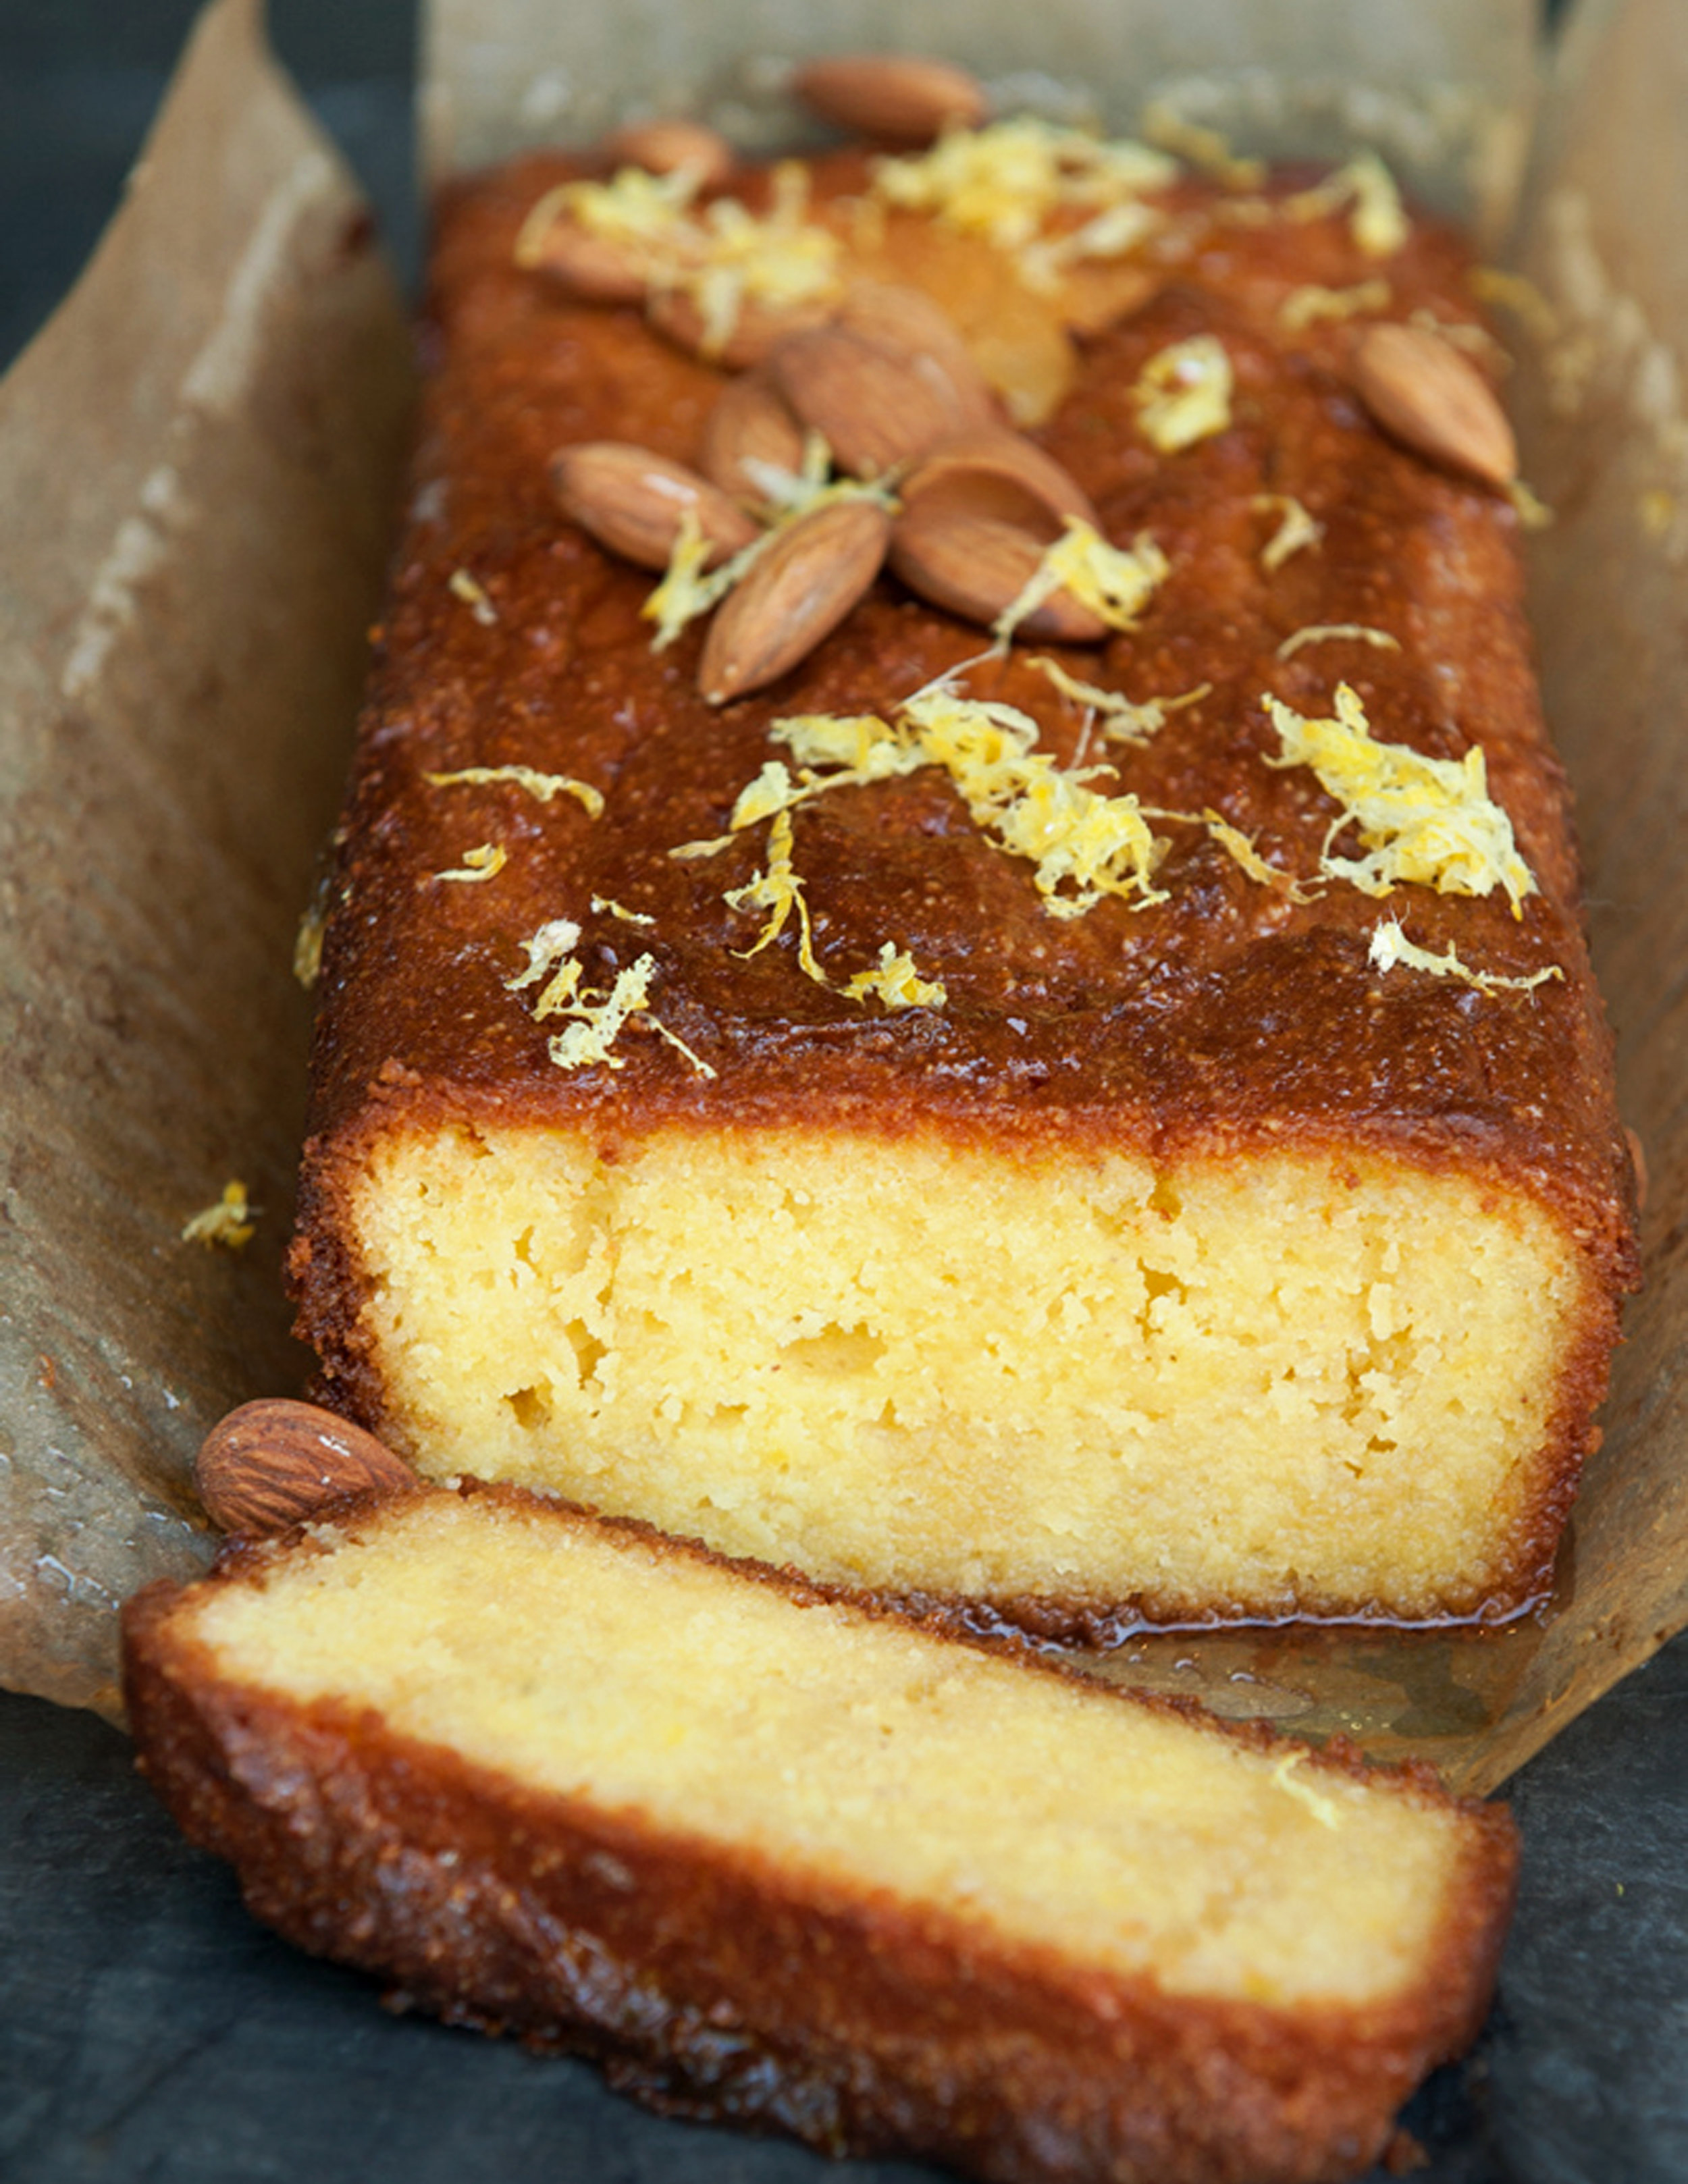 NG_073 - Lemon Cake Vertical.jpg